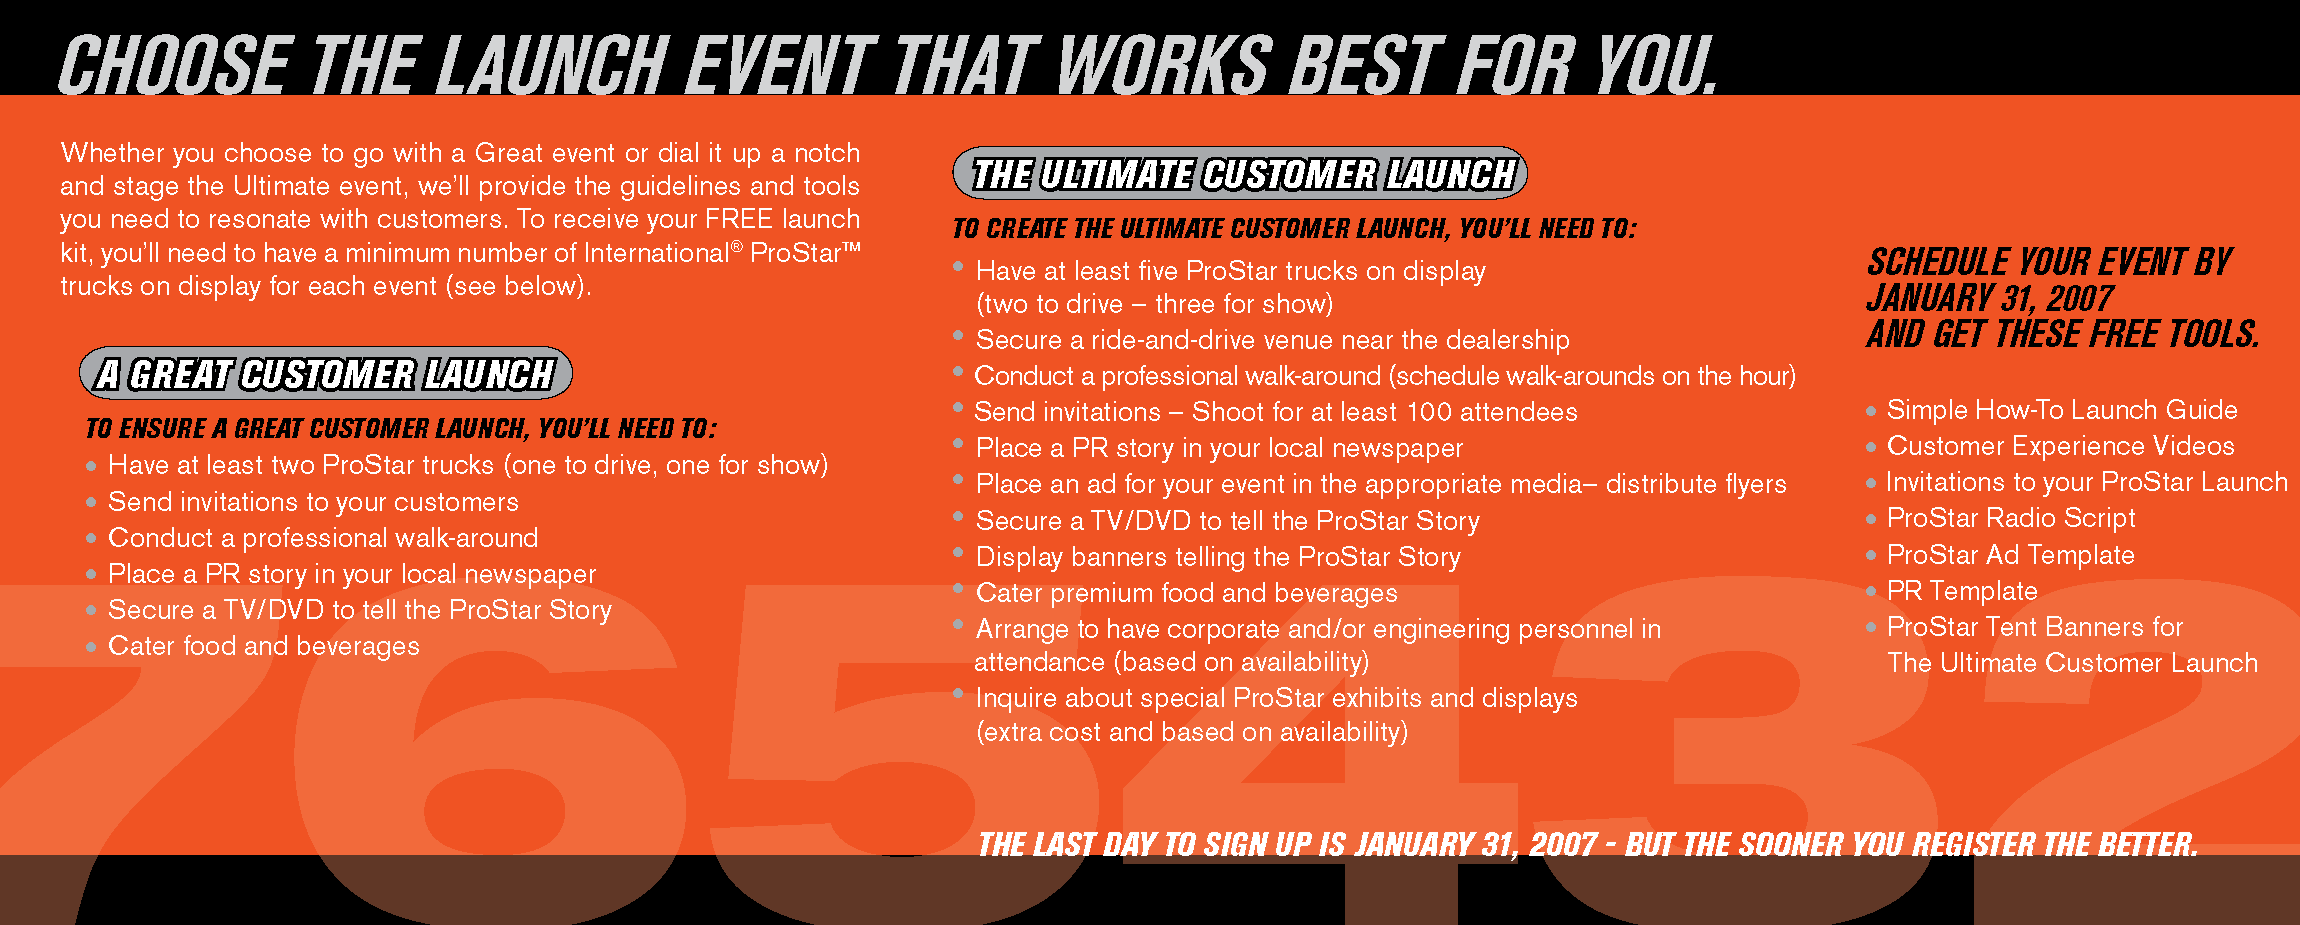 FOUR-LAUNCH GUIDE 2.png